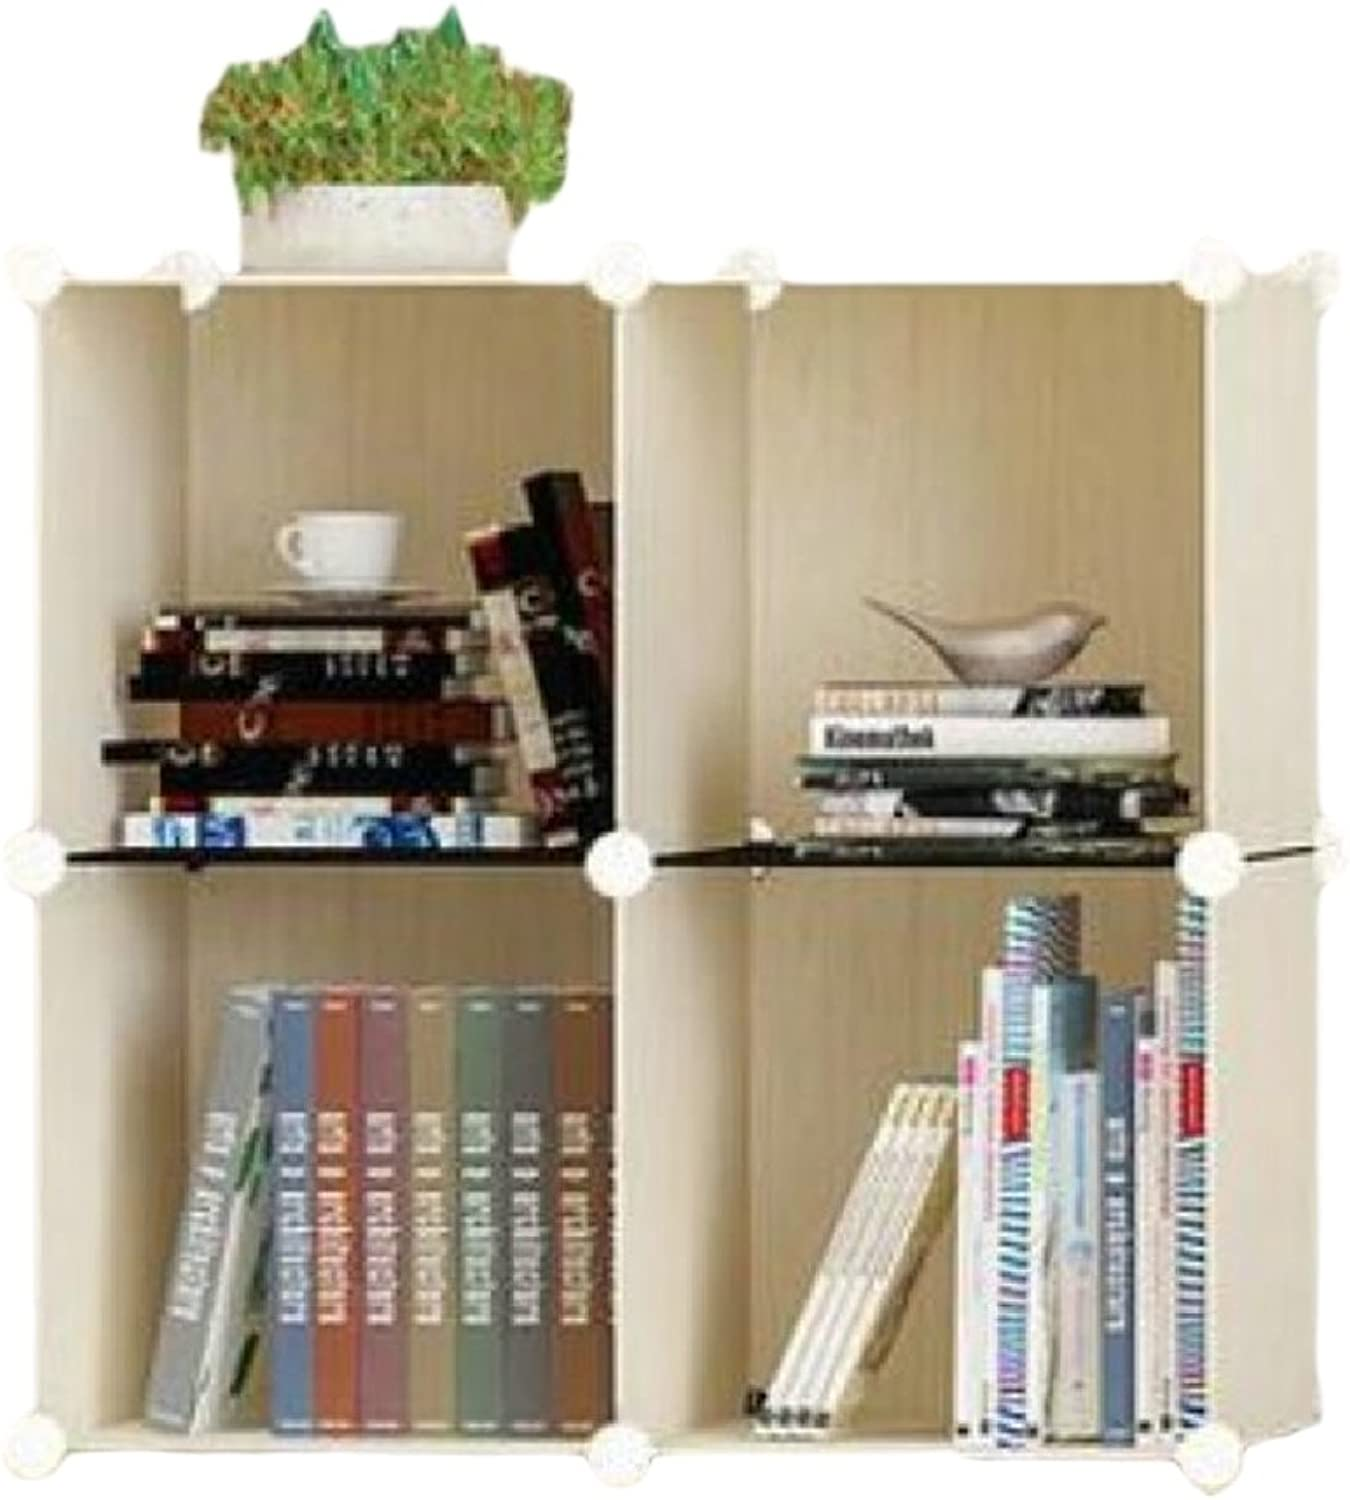 Coolred Shelving Unit Espresso Folding Dressy Casters Collapsable Wheels Kitchen Cabinet AS3 4 Shelves